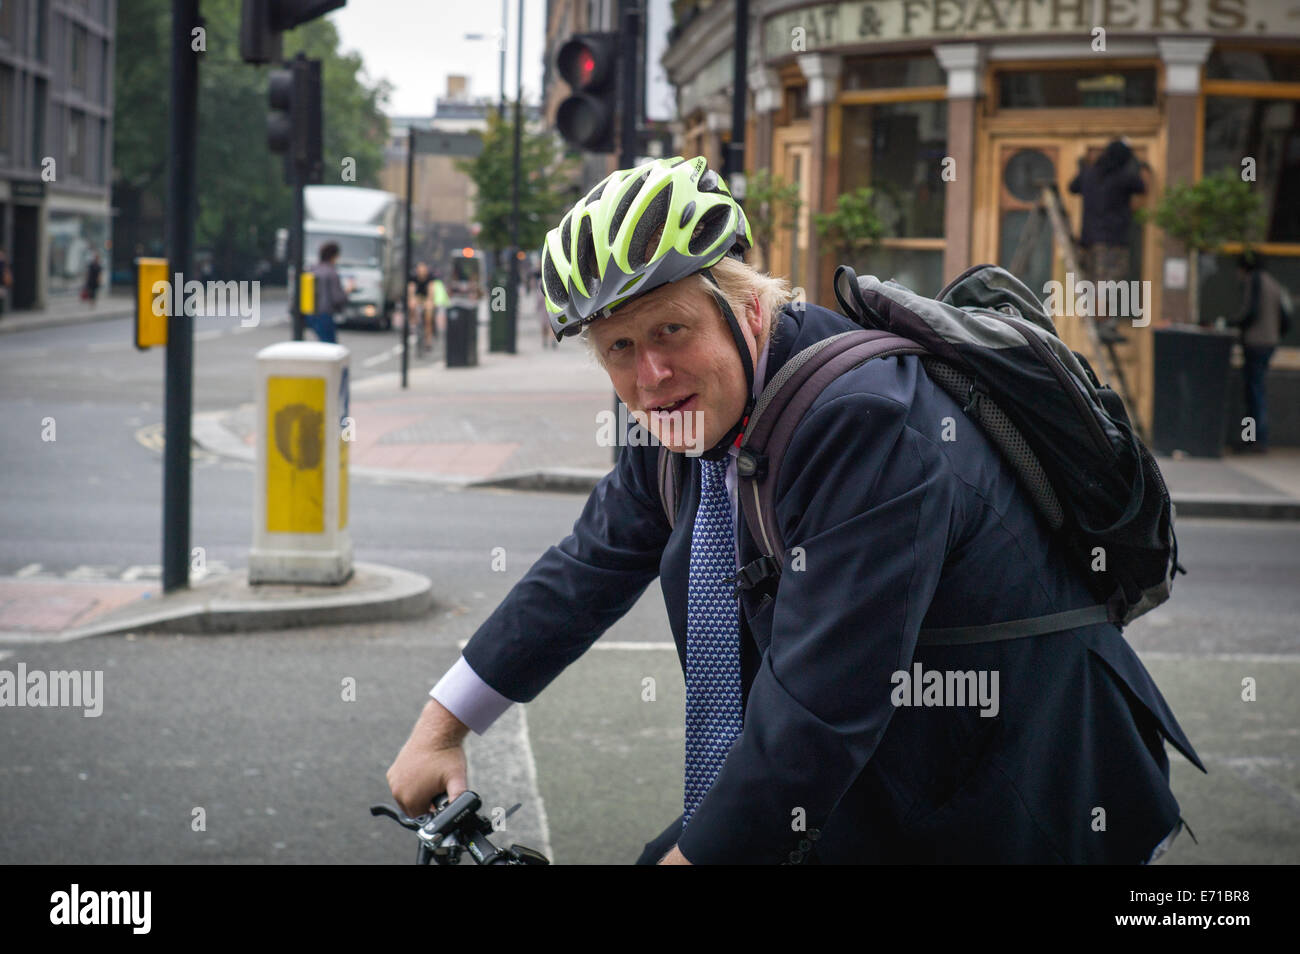 London, UK. 3rd September, 2014. Mayor of London, Boris Johnson on his way to work on his bicycle. Goswell Road, Stock Photo